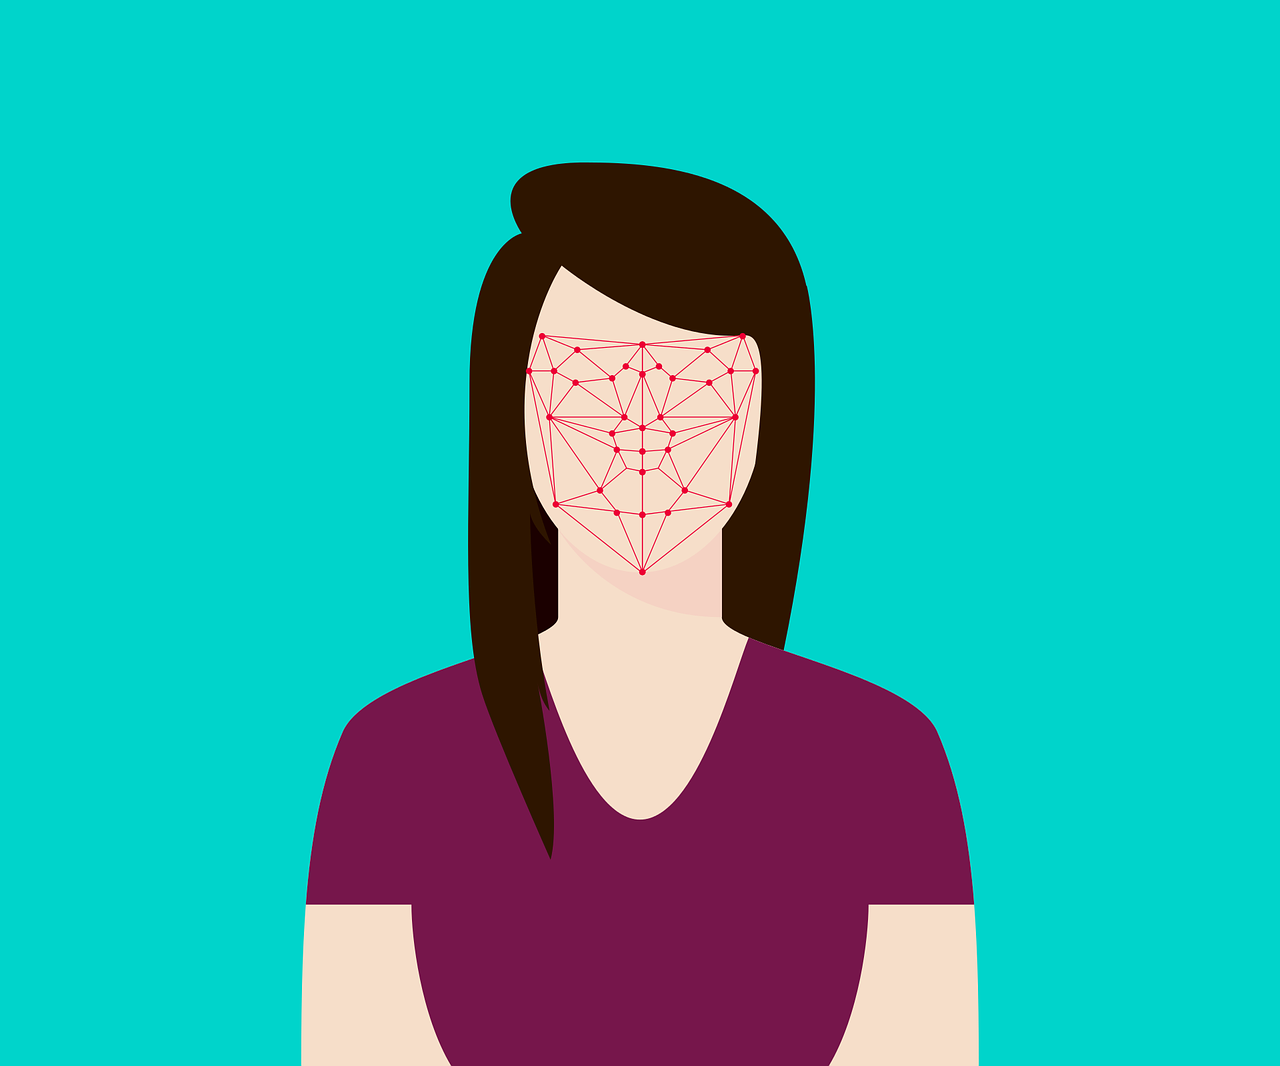 Co-op using facial recognition to scan customers